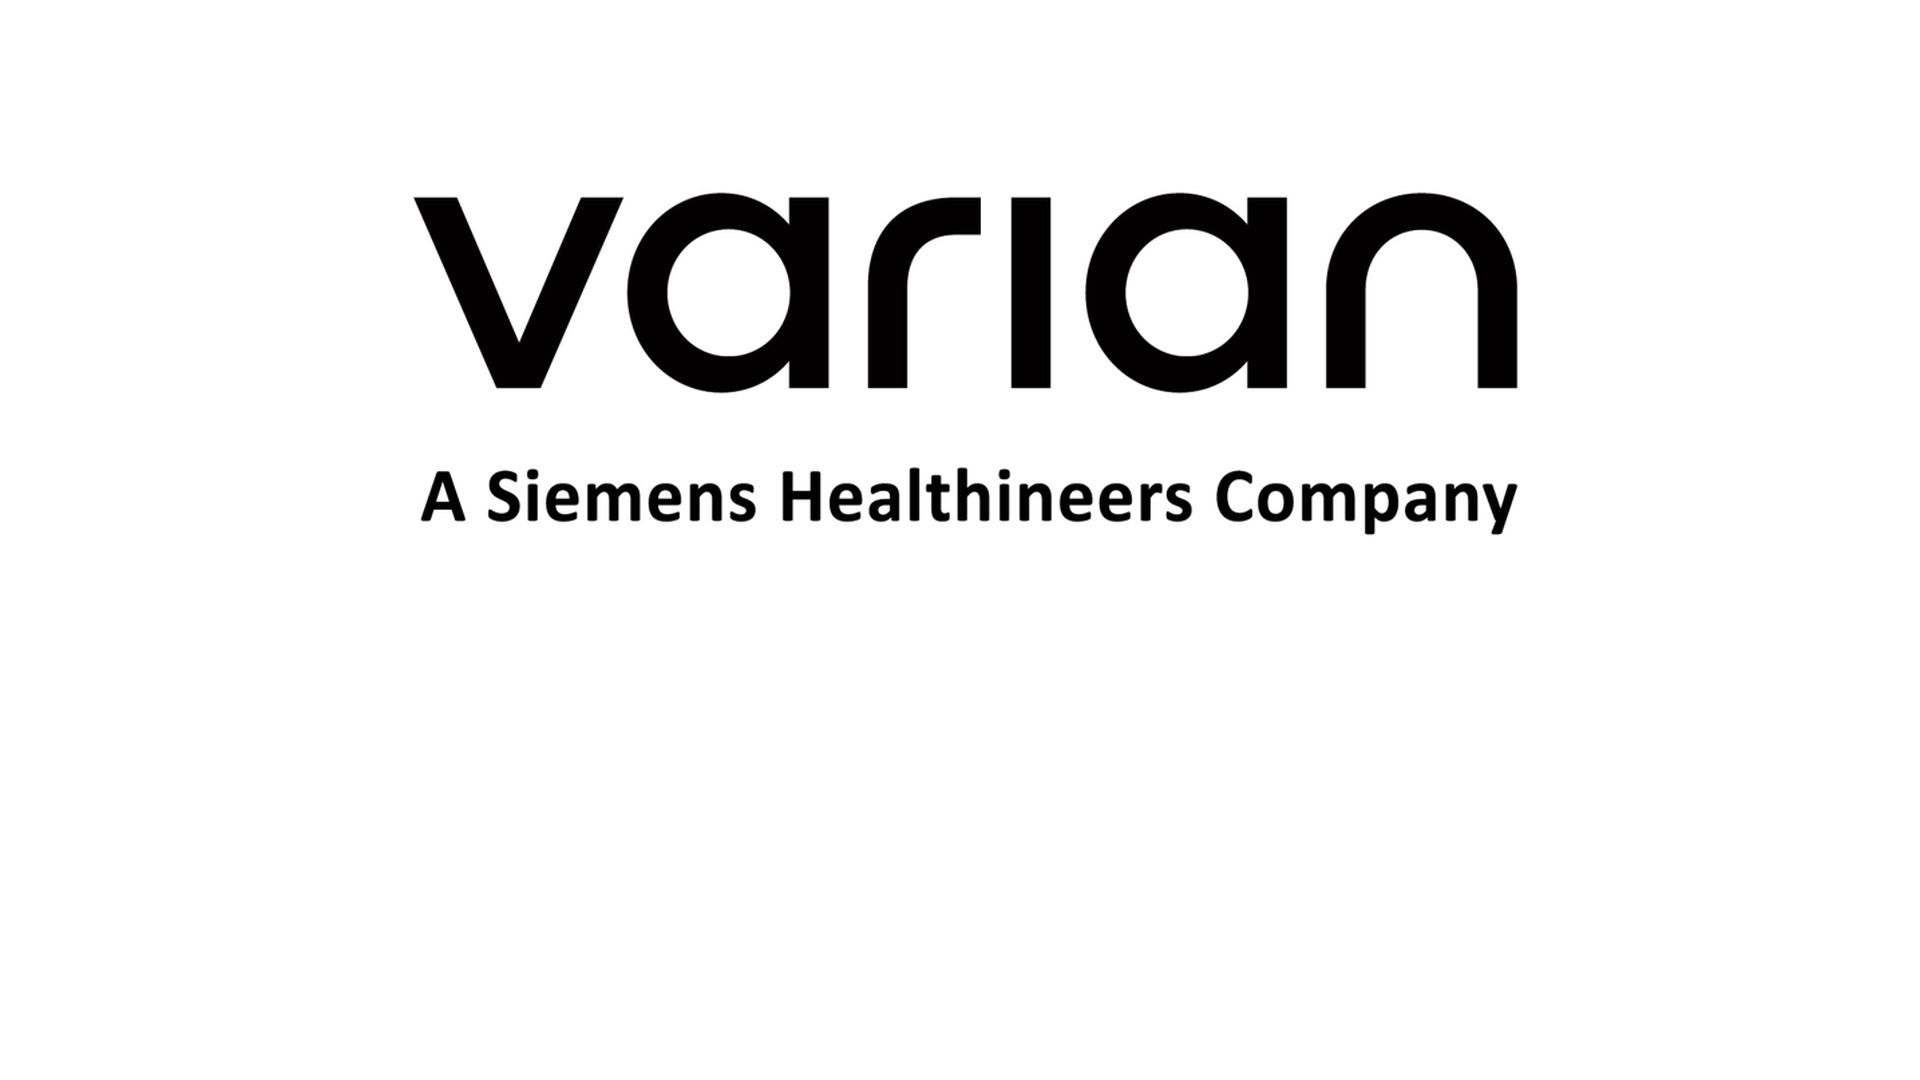 Oncotherapy industry leader Varian has carried out significant development in Hungary